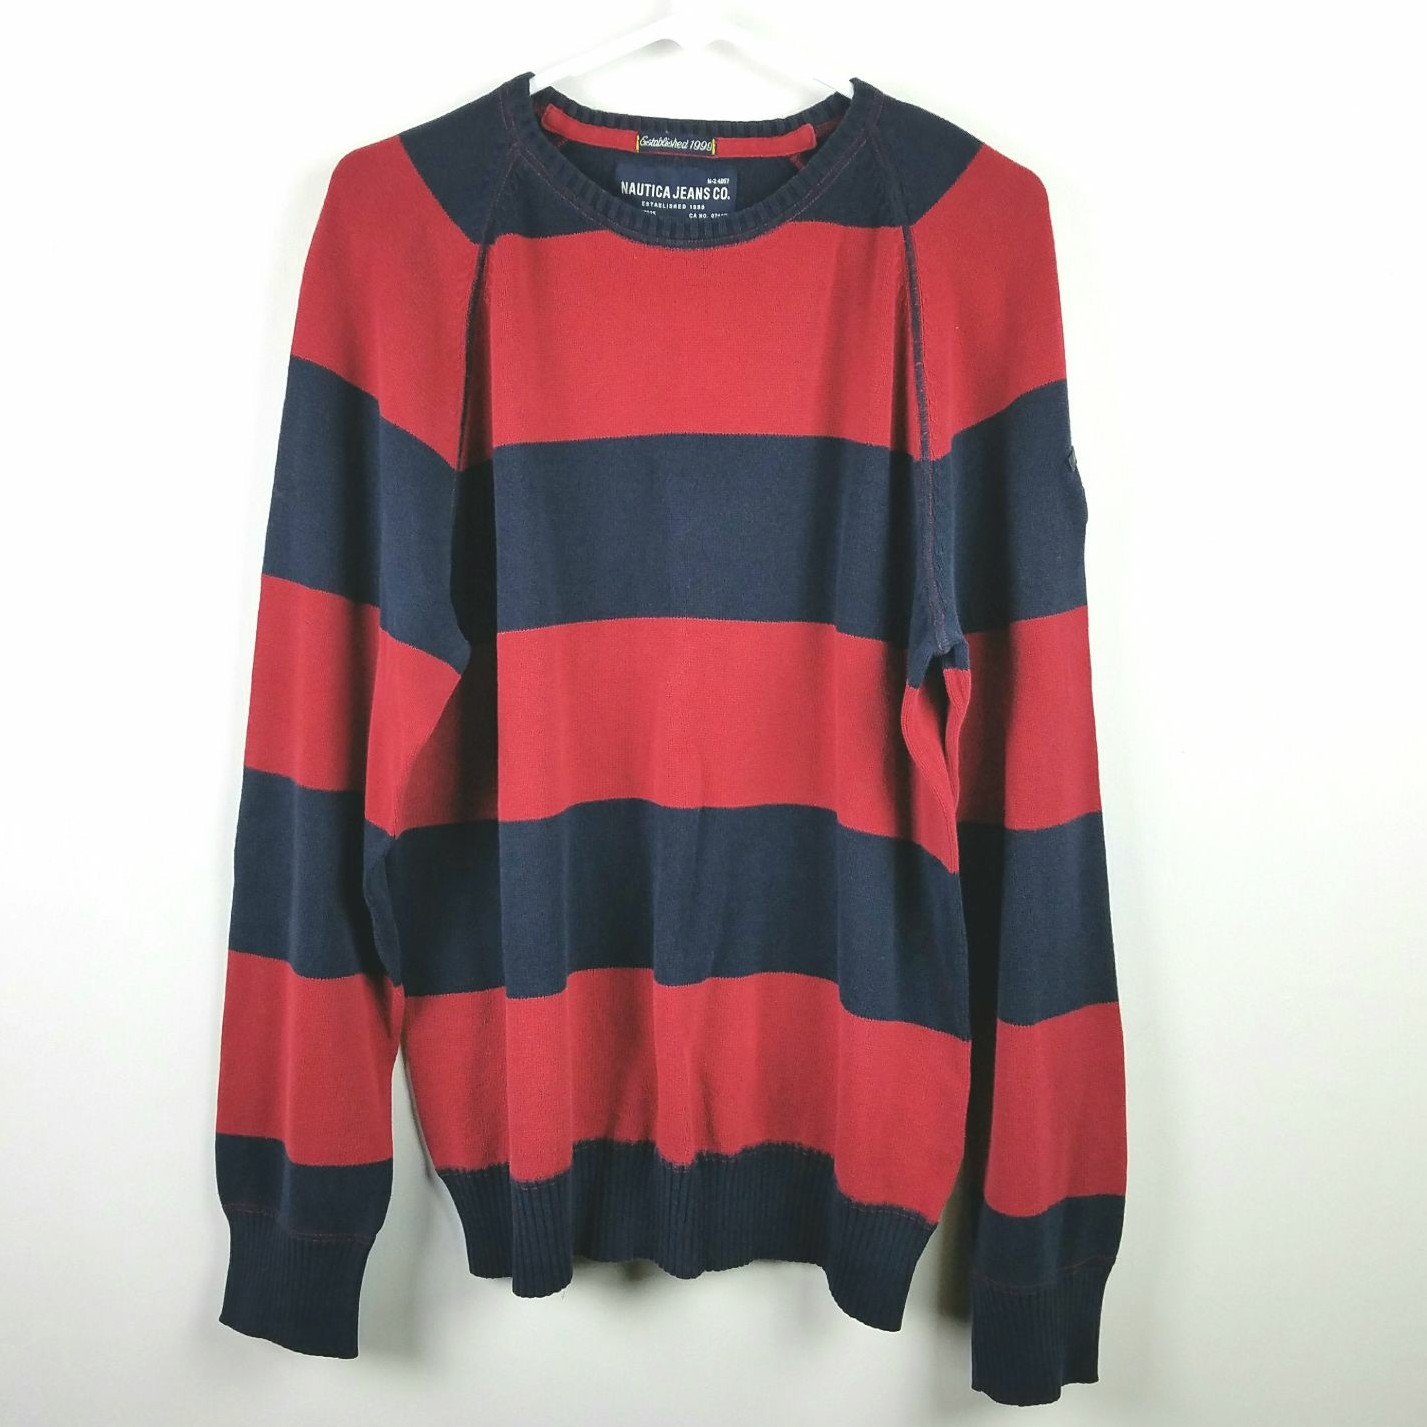 Nautica Red Navy Striped Sweater Sz L - Mercari: BUY & SELL THINGS ...